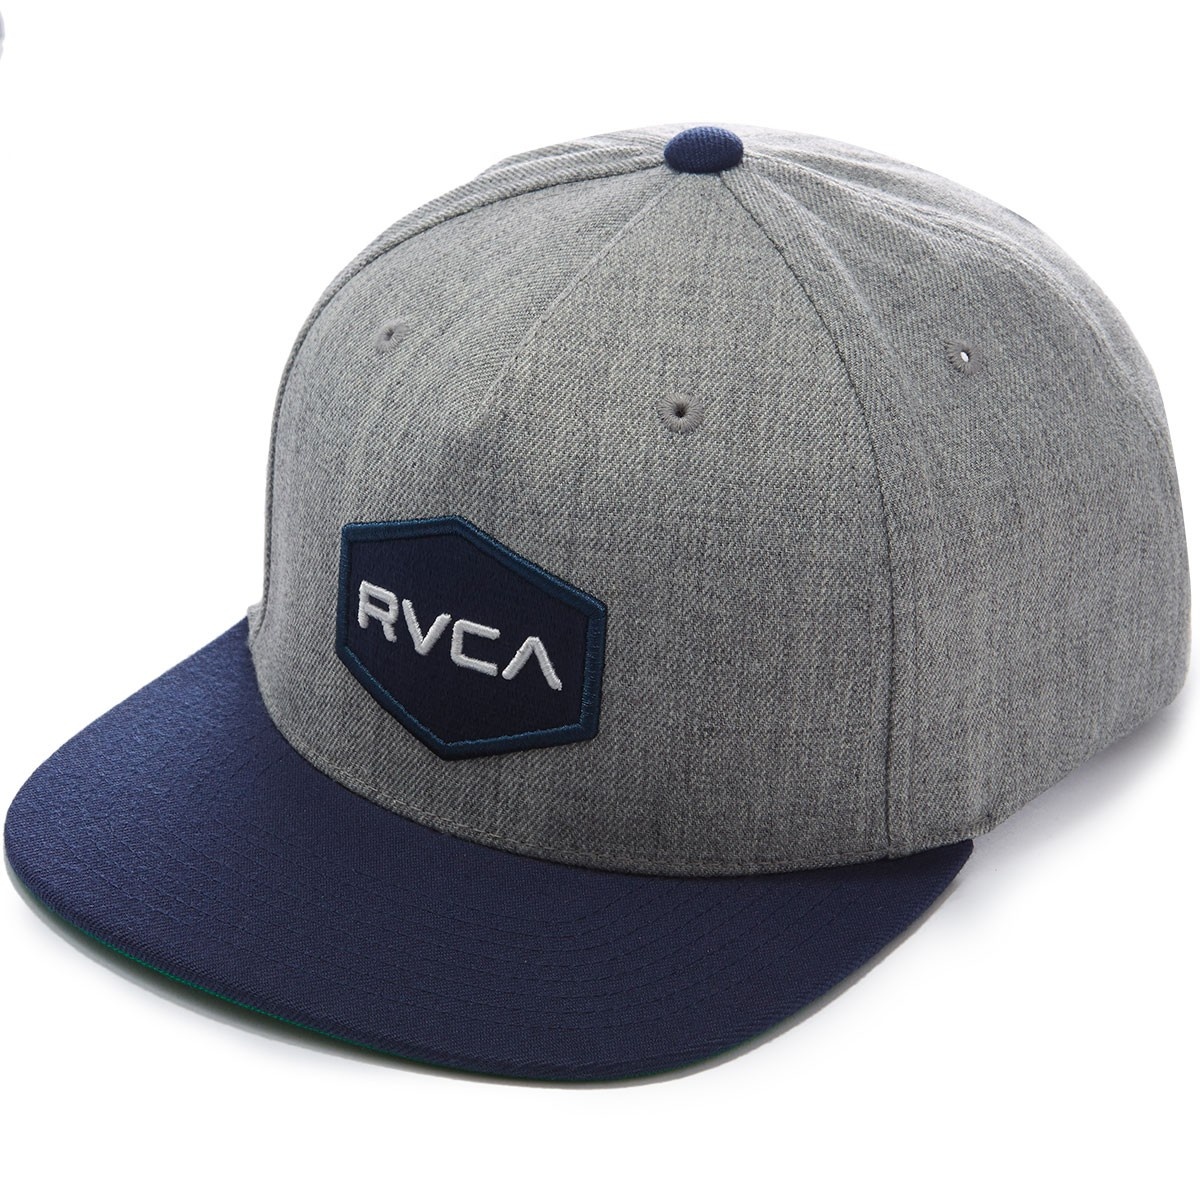 RVCA Commonwealth Snapback Hat - Grey Heather/Navy